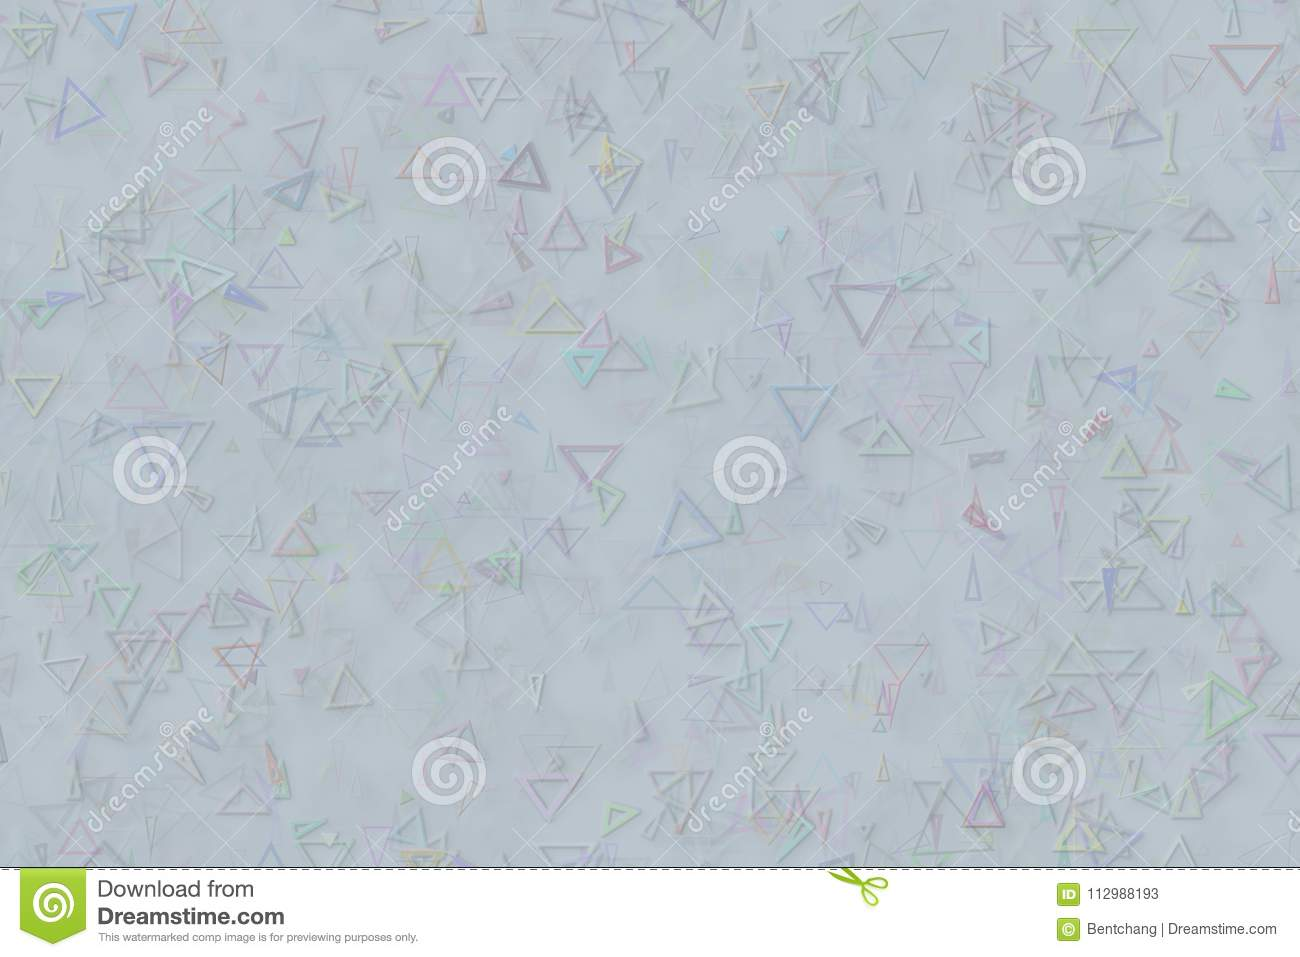 Shape pattern, wallpaper or texture background. Geometric, messy, cover & style.